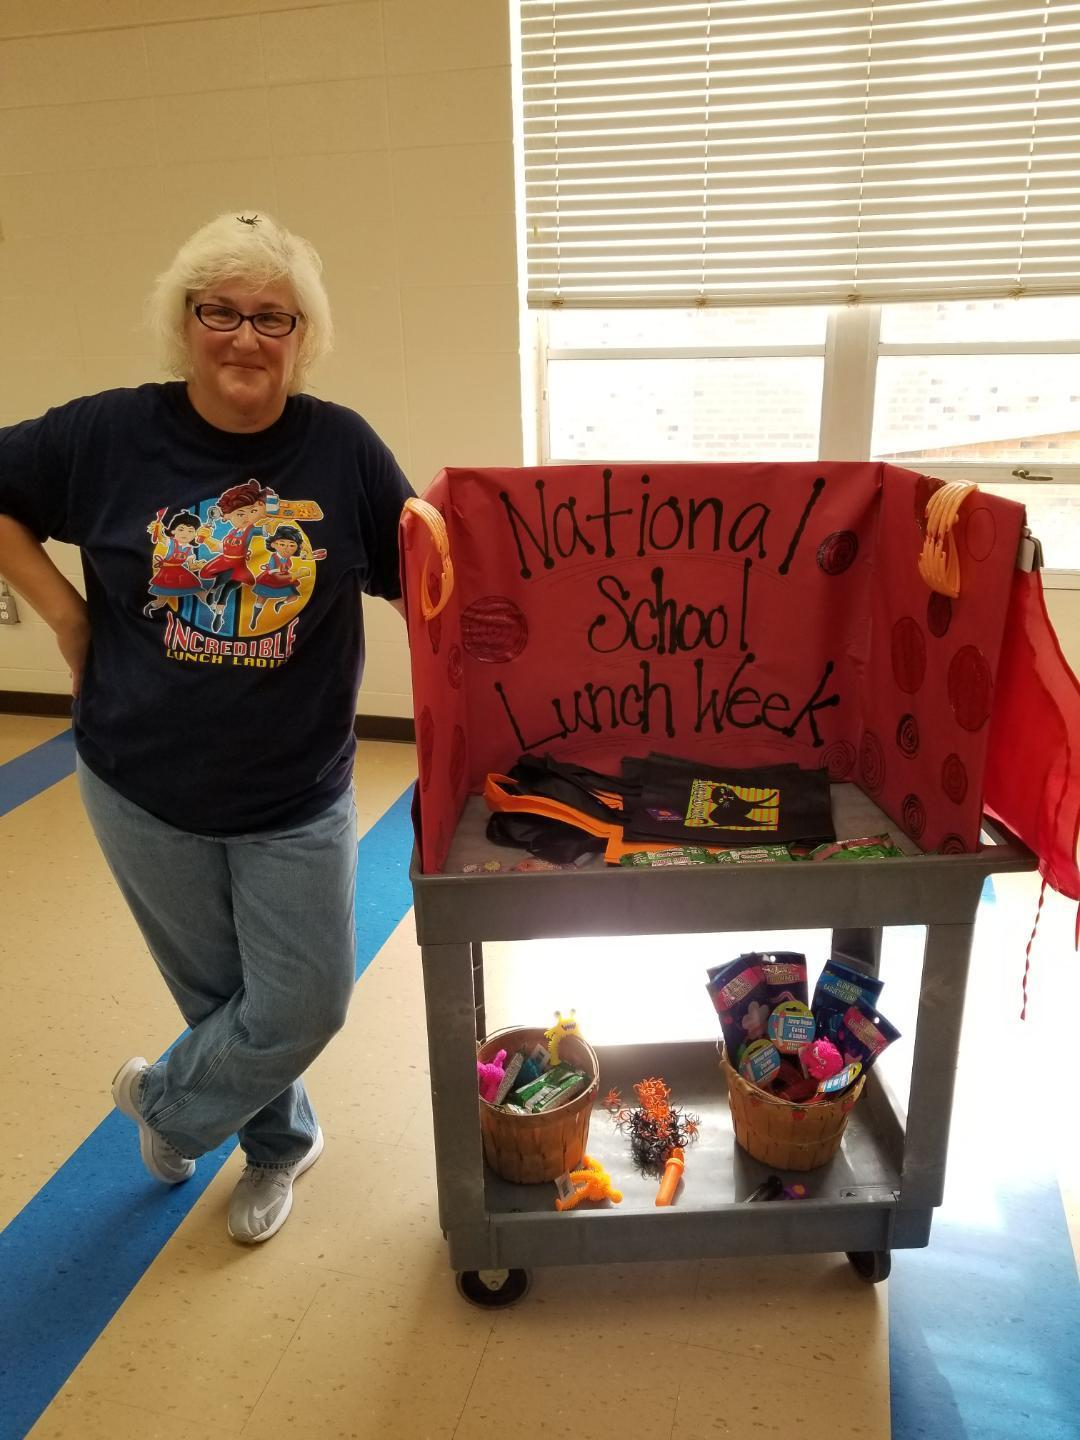 HANDING OUT PRIZES FOR NATIONAL SCHOOL LUNCH WEEK